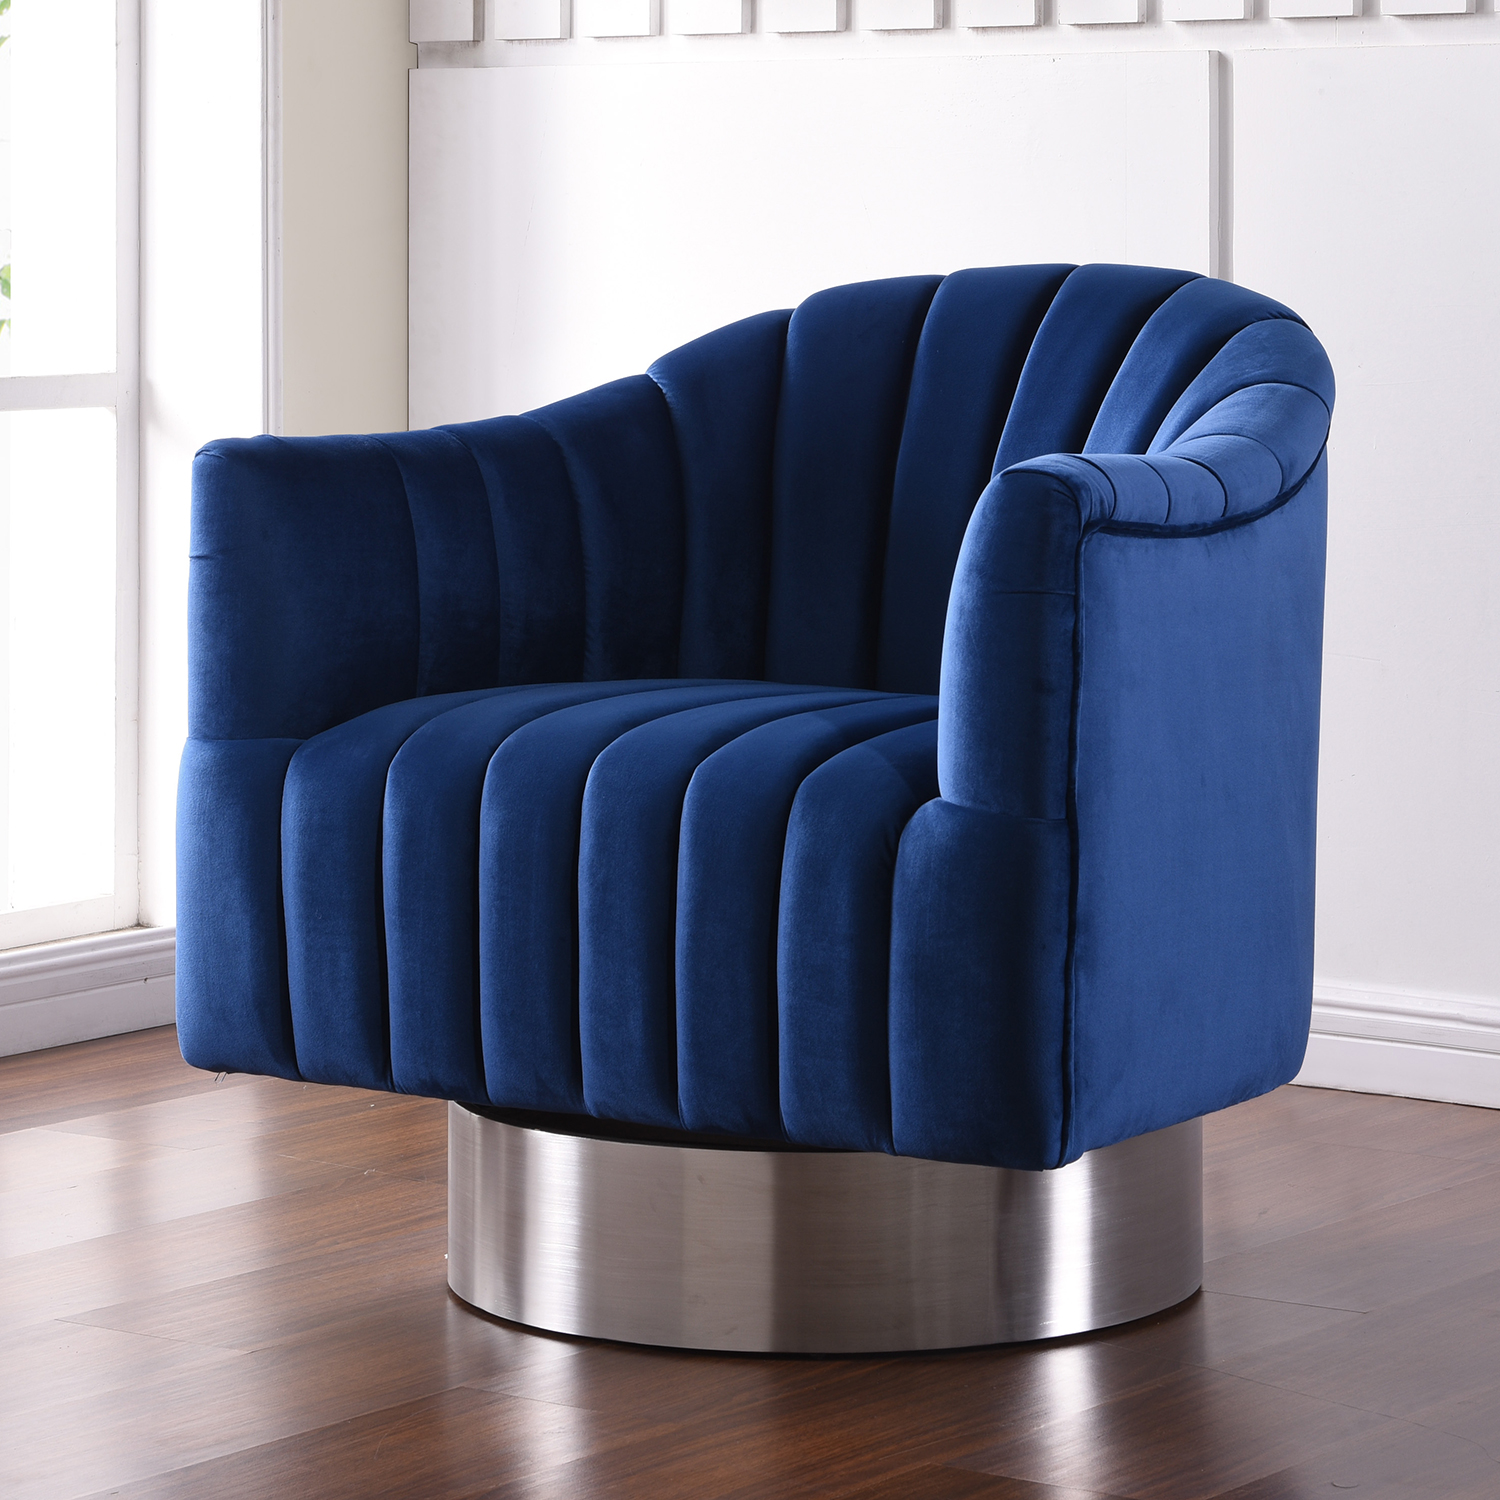 Meridian Furniture 519Navy Farrah Accent Chair in Tufted Navy